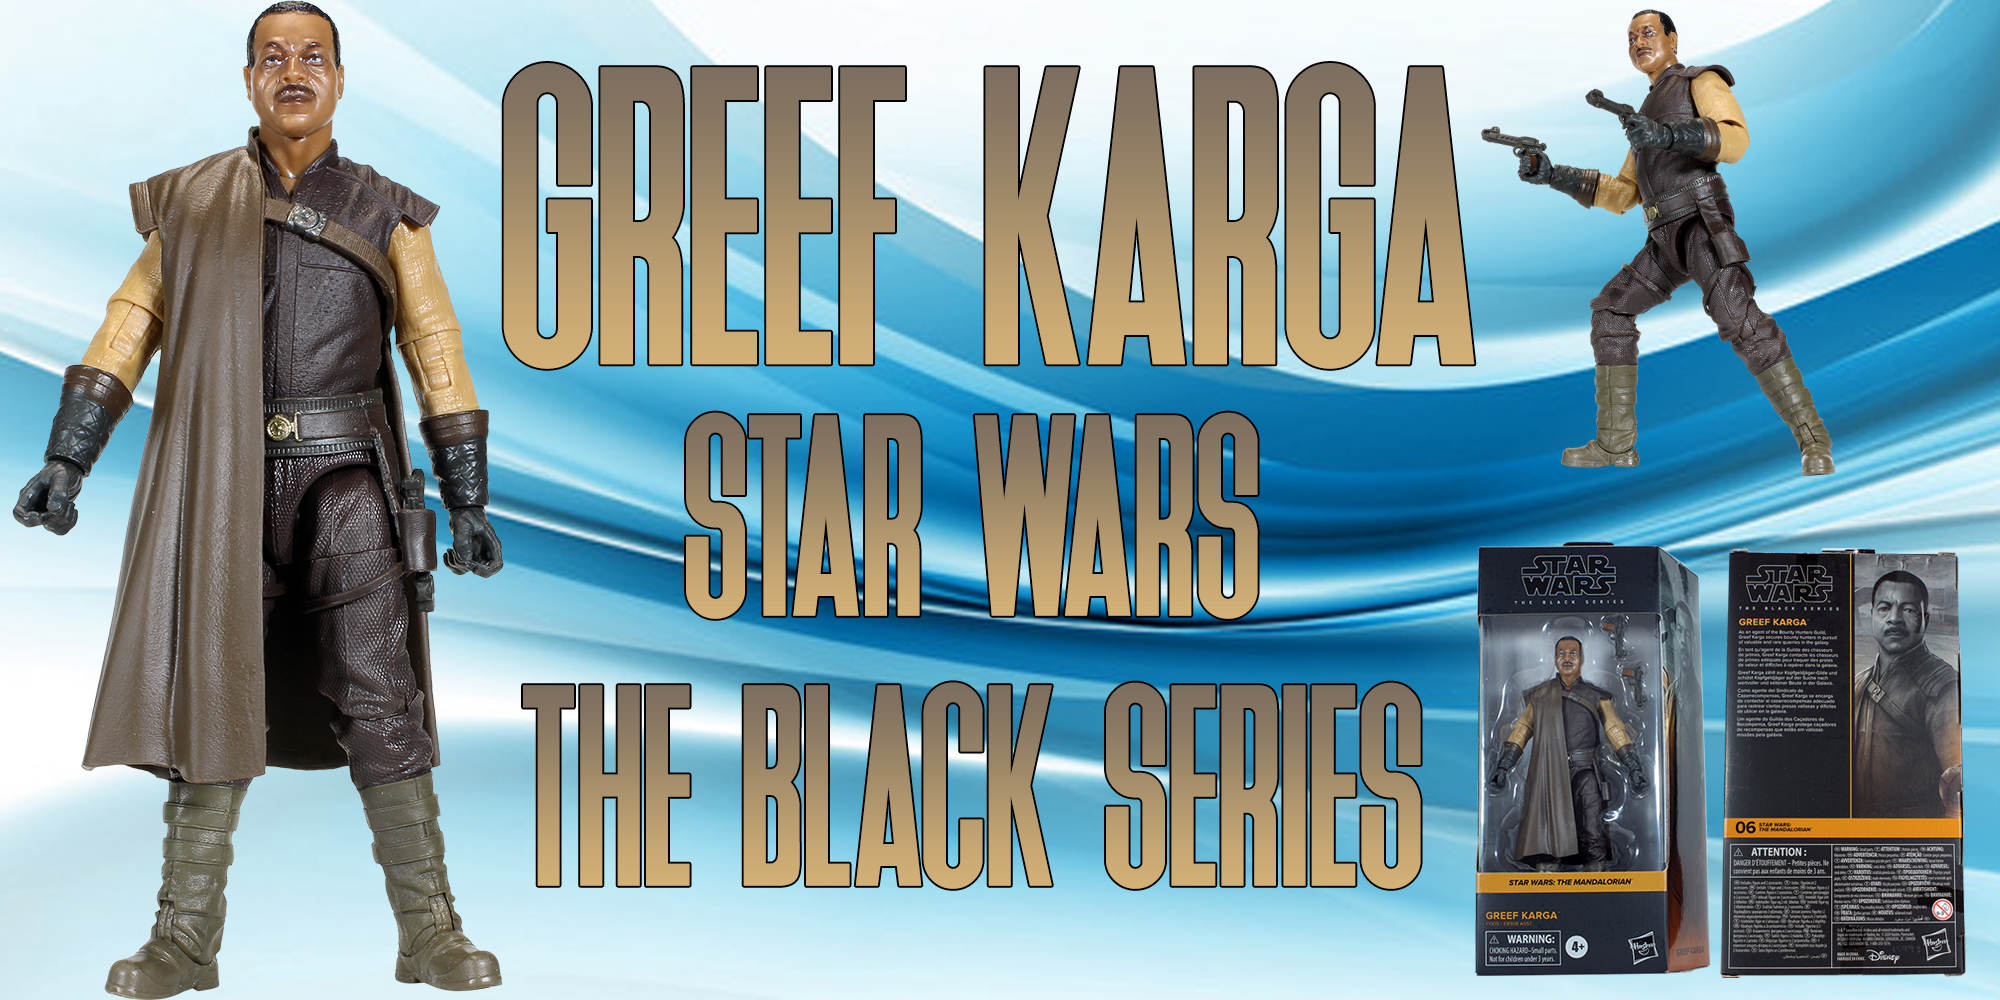 Black Series Greef Karga